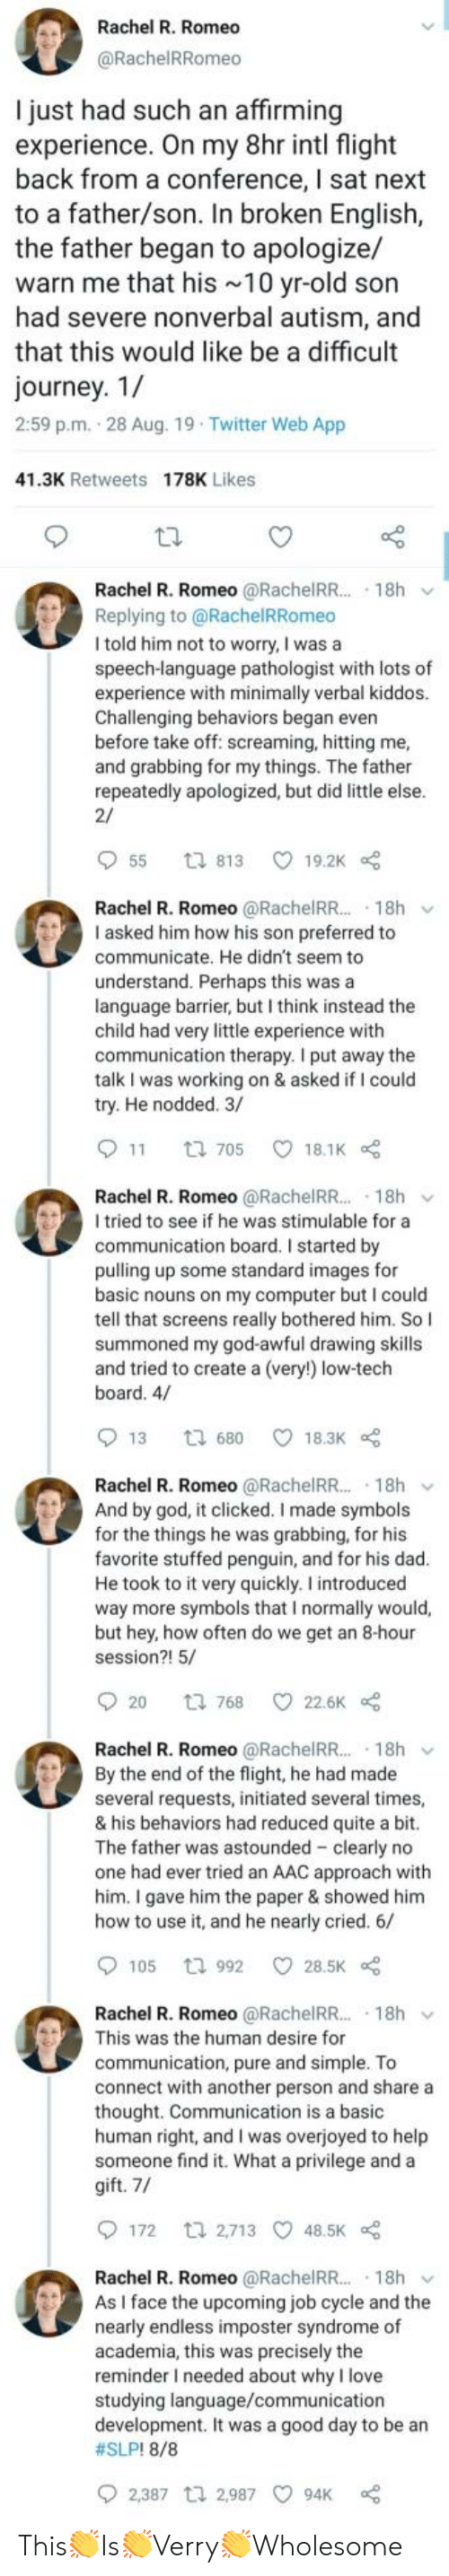 Dad, God, and Journey: Rachel R. Romeo  @RachelRRomeo  I just had such an affirming  experience. On my 8hr intl flight  back from a conference, I sat next  to a father/son. In broken English,  the father began to apologize/  warn me that his 10 yr-old son  had severe nonverbal autism, and  that this would like be a difficult  journey. 1/  2:59 p.m. 28 Aug. 19 Twitter Web App  41.3K Retweets 178K Likes  Rachel R. Romeo @RachelRR.. 18h  Replying to @RachelRRomeo  I told him not to worry, I was a  speech-language pathologist with lots of  experience with minimally verbal kiddos.  Challenging behaviors began even  before take off: screaming, hitting me,  and grabbing for my things. The father  repeatedly apologized, but did little else.  2/  55  19.2K  t 813  Rachel R. Romeo @RachelR... 18h  I asked him how his son preferred to  communicate. He didn't seem to  understand. Perhaps this was a  language barrier, but I think instead the  child had very little experience with  communication therapy. I put away the  talk I was working on & asked if I could  try. He nodded. 3/  11  18.1K  t 705  Rachel R. Romeo @RachelR... 18h  I tried to see if he was stimulable for a  communication board. I started by  pulling up some standard images for  basic nouns on my computer but I could  tell that screens really bothered him. So I  summoned my god-awful drawing skills  and tried to create a (very!) low-tech  board. 4/  13  18.3K  t 680  Rachel R. Romeo @RachelRR.. 18h  And by god, it clicked. I made symbols  for the things he was grabbing, for his  favorite stuffed penguin, and for his dad.  He took to it very quickly. I introduced  way more symbols that I normally would,  but hey, how often do we get an 8-hour  session?! 5/  20  22.6K  t 768  Rachel R. Romeo @RachelRR.. 18h  By the end of the flight, he had made  several requests, initiated several times,  & his behaviors had reduced quite a bit.  The father was astounded clearly no  one had ever tried an AAC approach with  him. I gave him the paper & showed him  how to use it, and he nearly cried. 6/  105  28.5K  t 992  Rachel R. Romeo @RachelRR.. 18h  This was the human desire for  communication, pure and simple. To  connect with another person and share a  thought. Communication is a basic  human right, and I was overjoyed to help  someone find it. What a privilege and a  gift. 7/  172  t 2,713 48.5K  Rachel R. Romeo @RachelRR...  As I face the upcoming job cycle and the  nearly endless imposter syndrome of  academia, this was precisely the  reminder I needed about why I love  studying language/communication  development. It was a good day to be an  18h  #SLP! 8/8  2,387 t 2,987  94K This👏Is👏Verry👏Wholesome